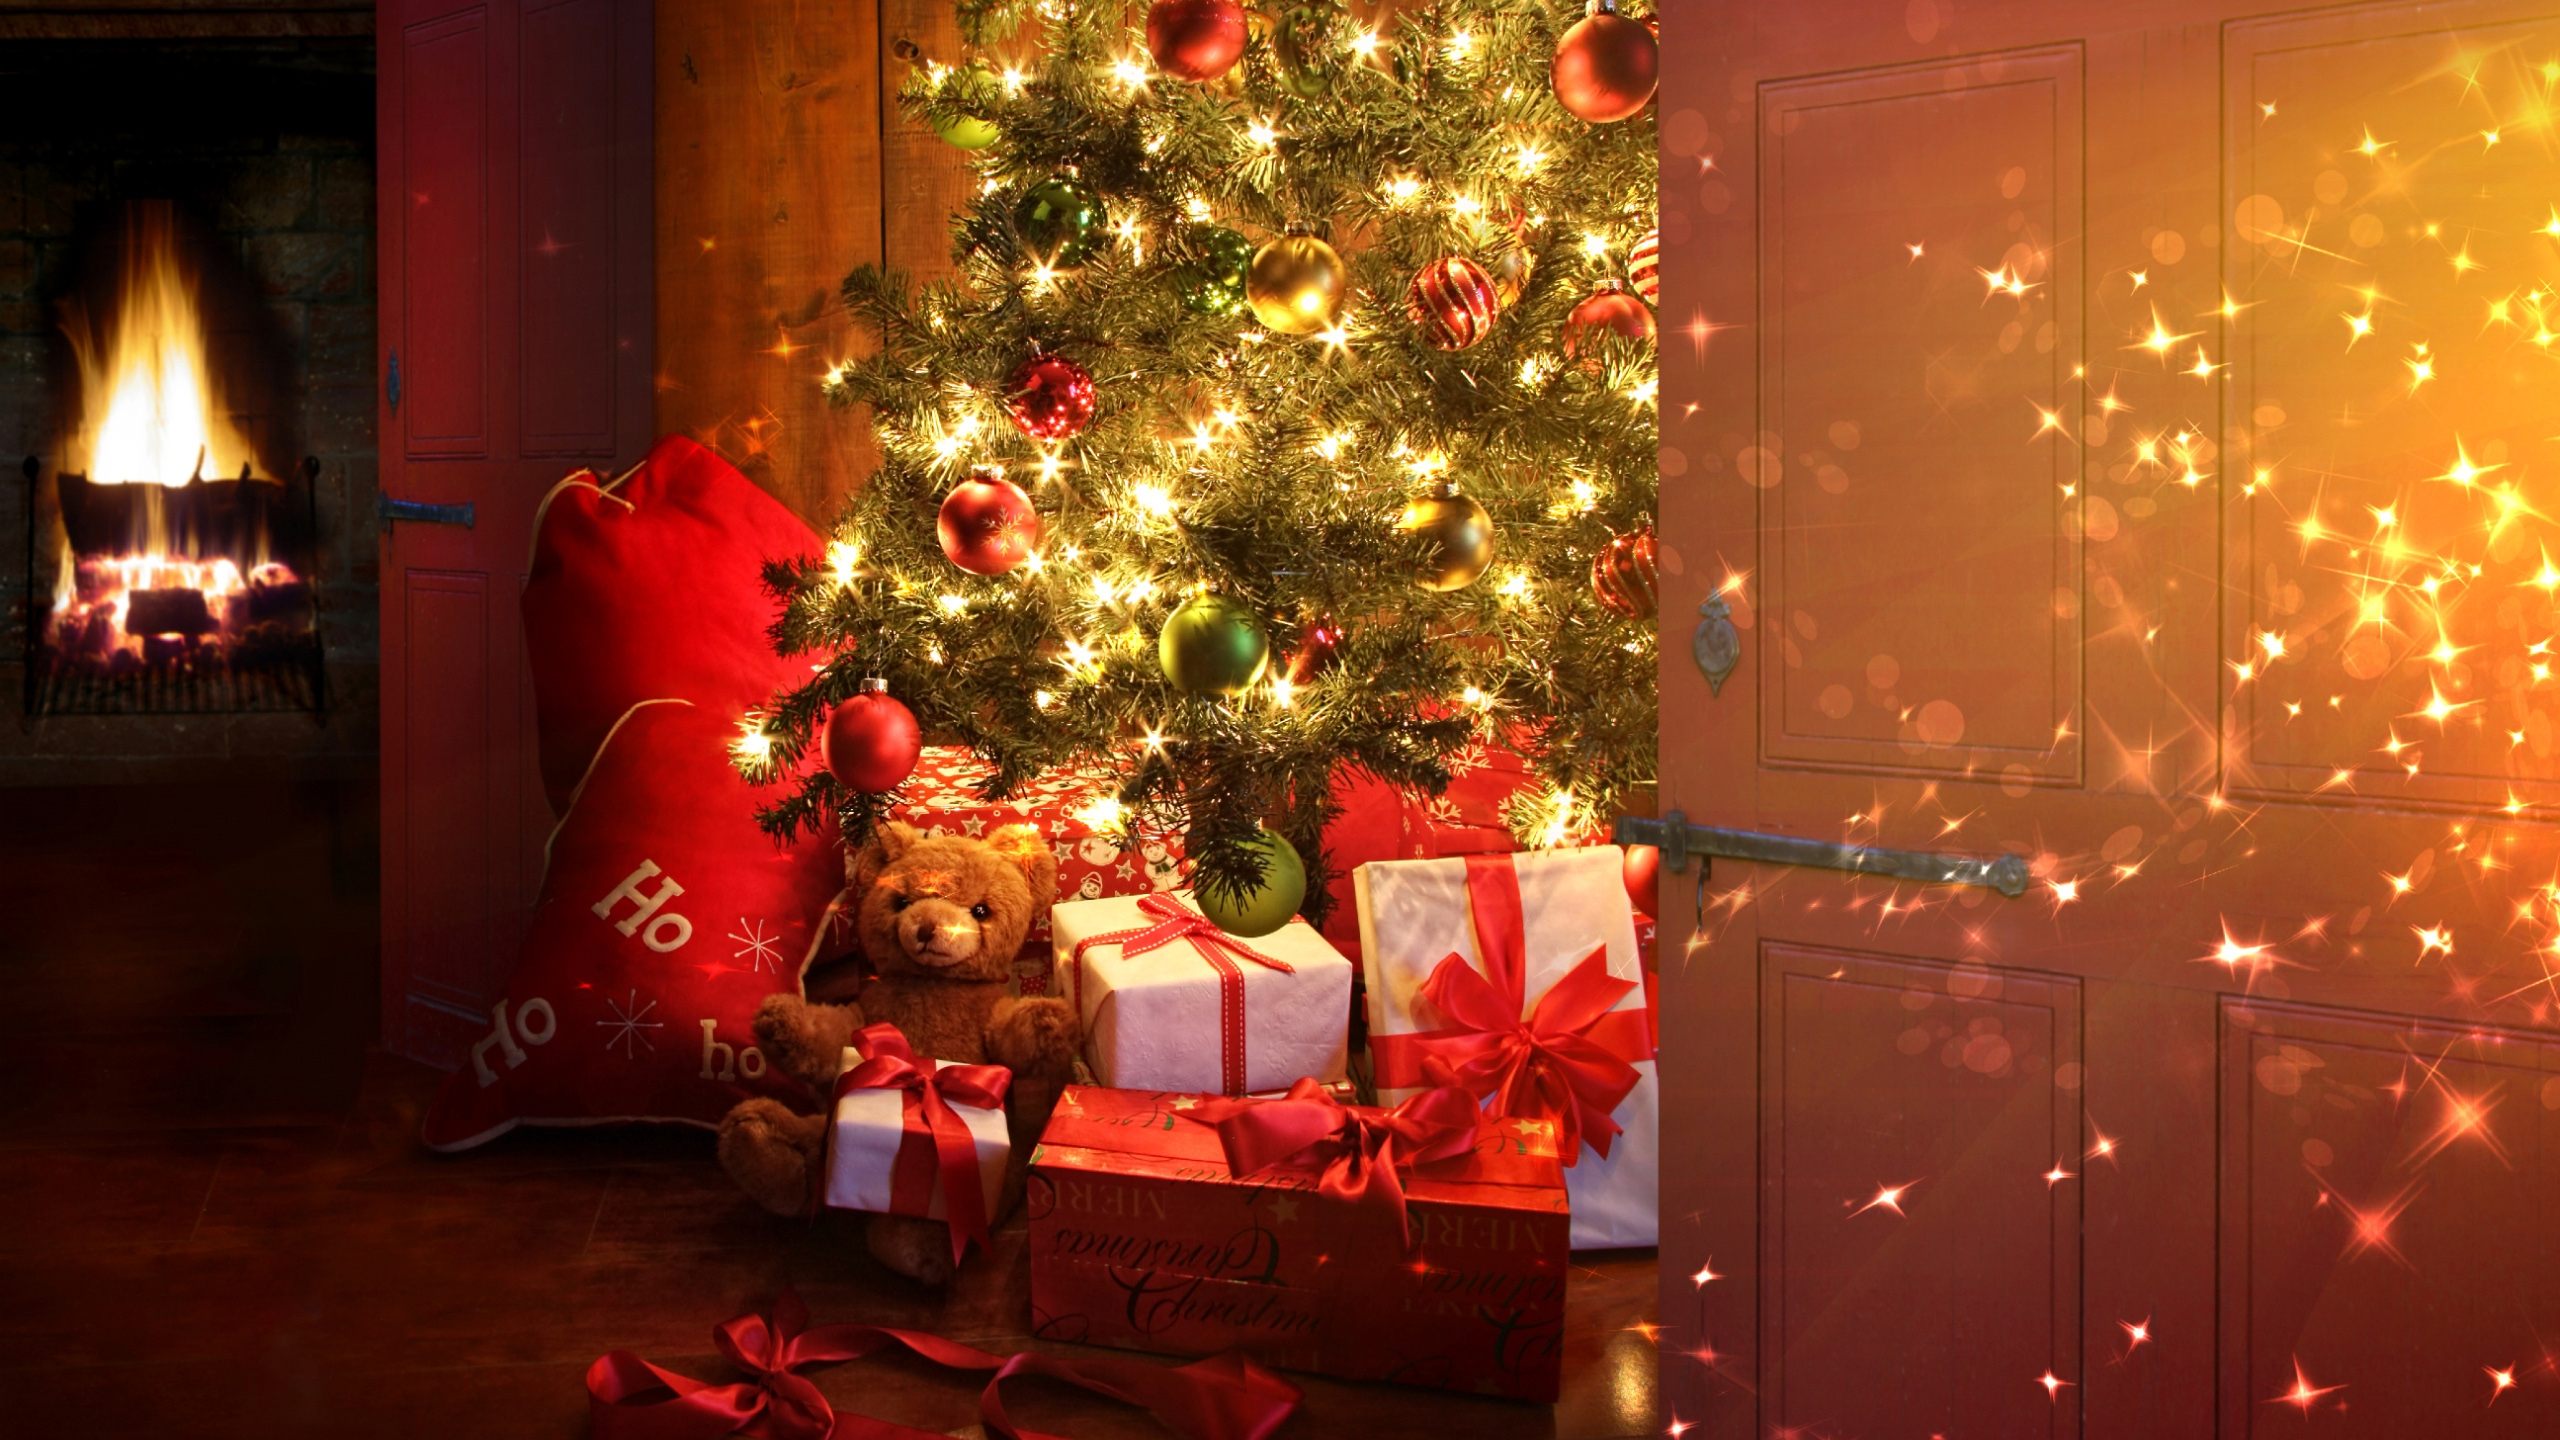 2560x1440 Christmas tree and presents